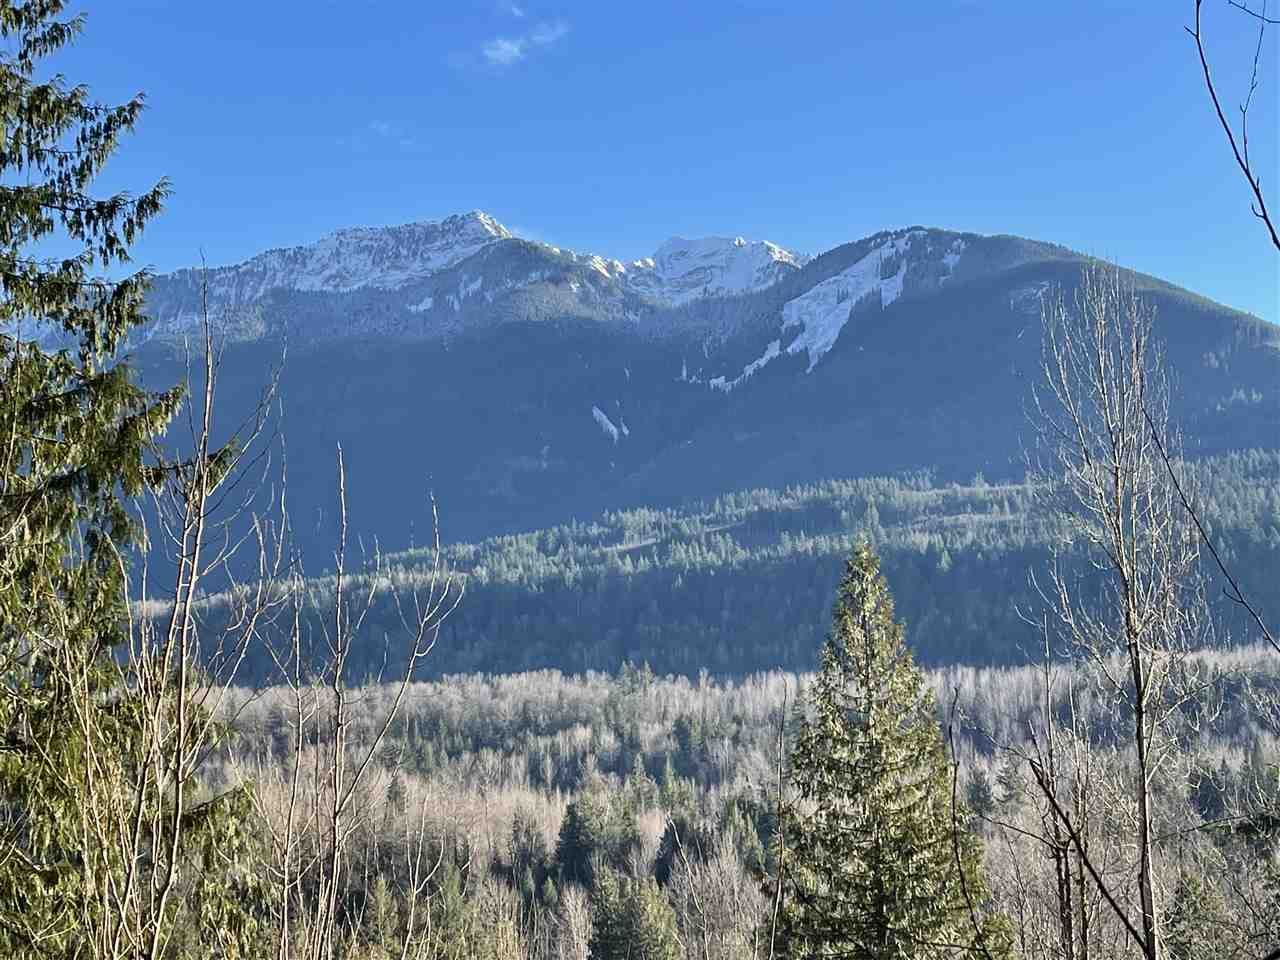 Main Photo: 4149 SLESSE Road in Chilliwack: Chilliwack River Valley Land for sale (Sardis)  : MLS®# R2529886